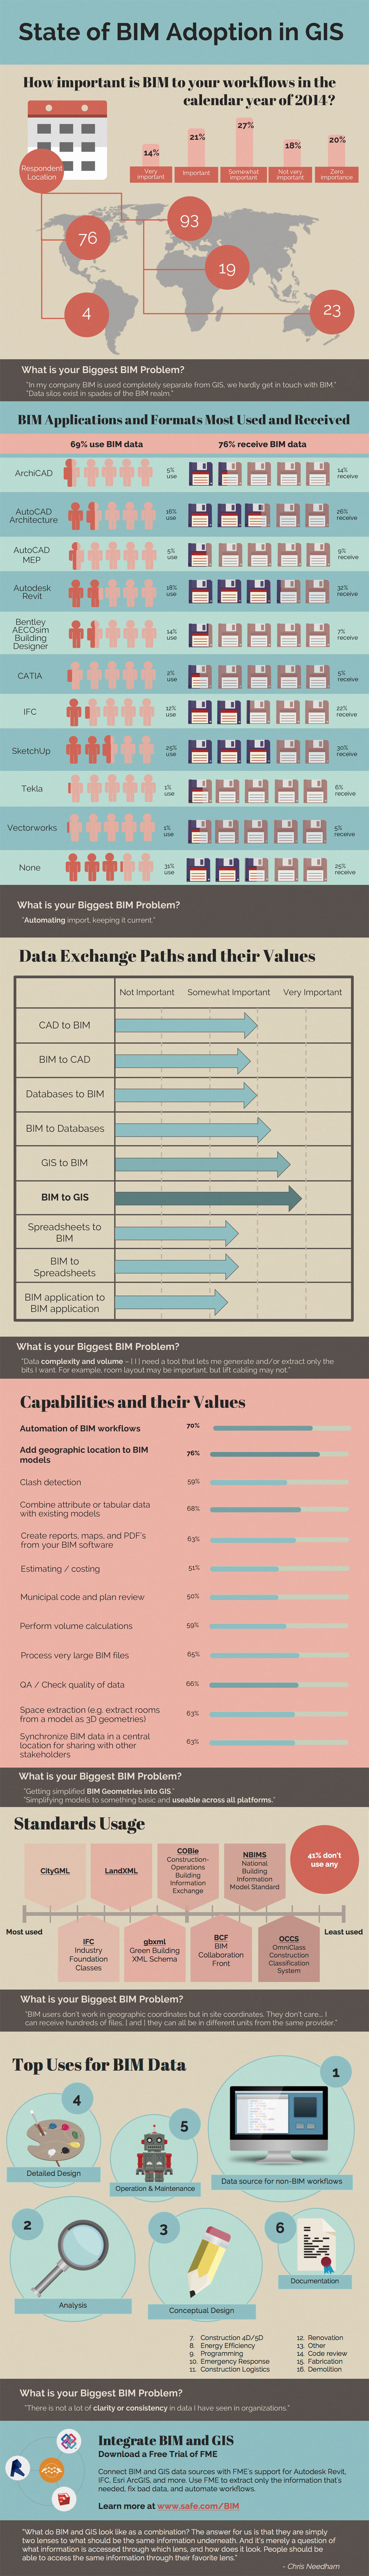 BIM Adoption in GIS Infographic